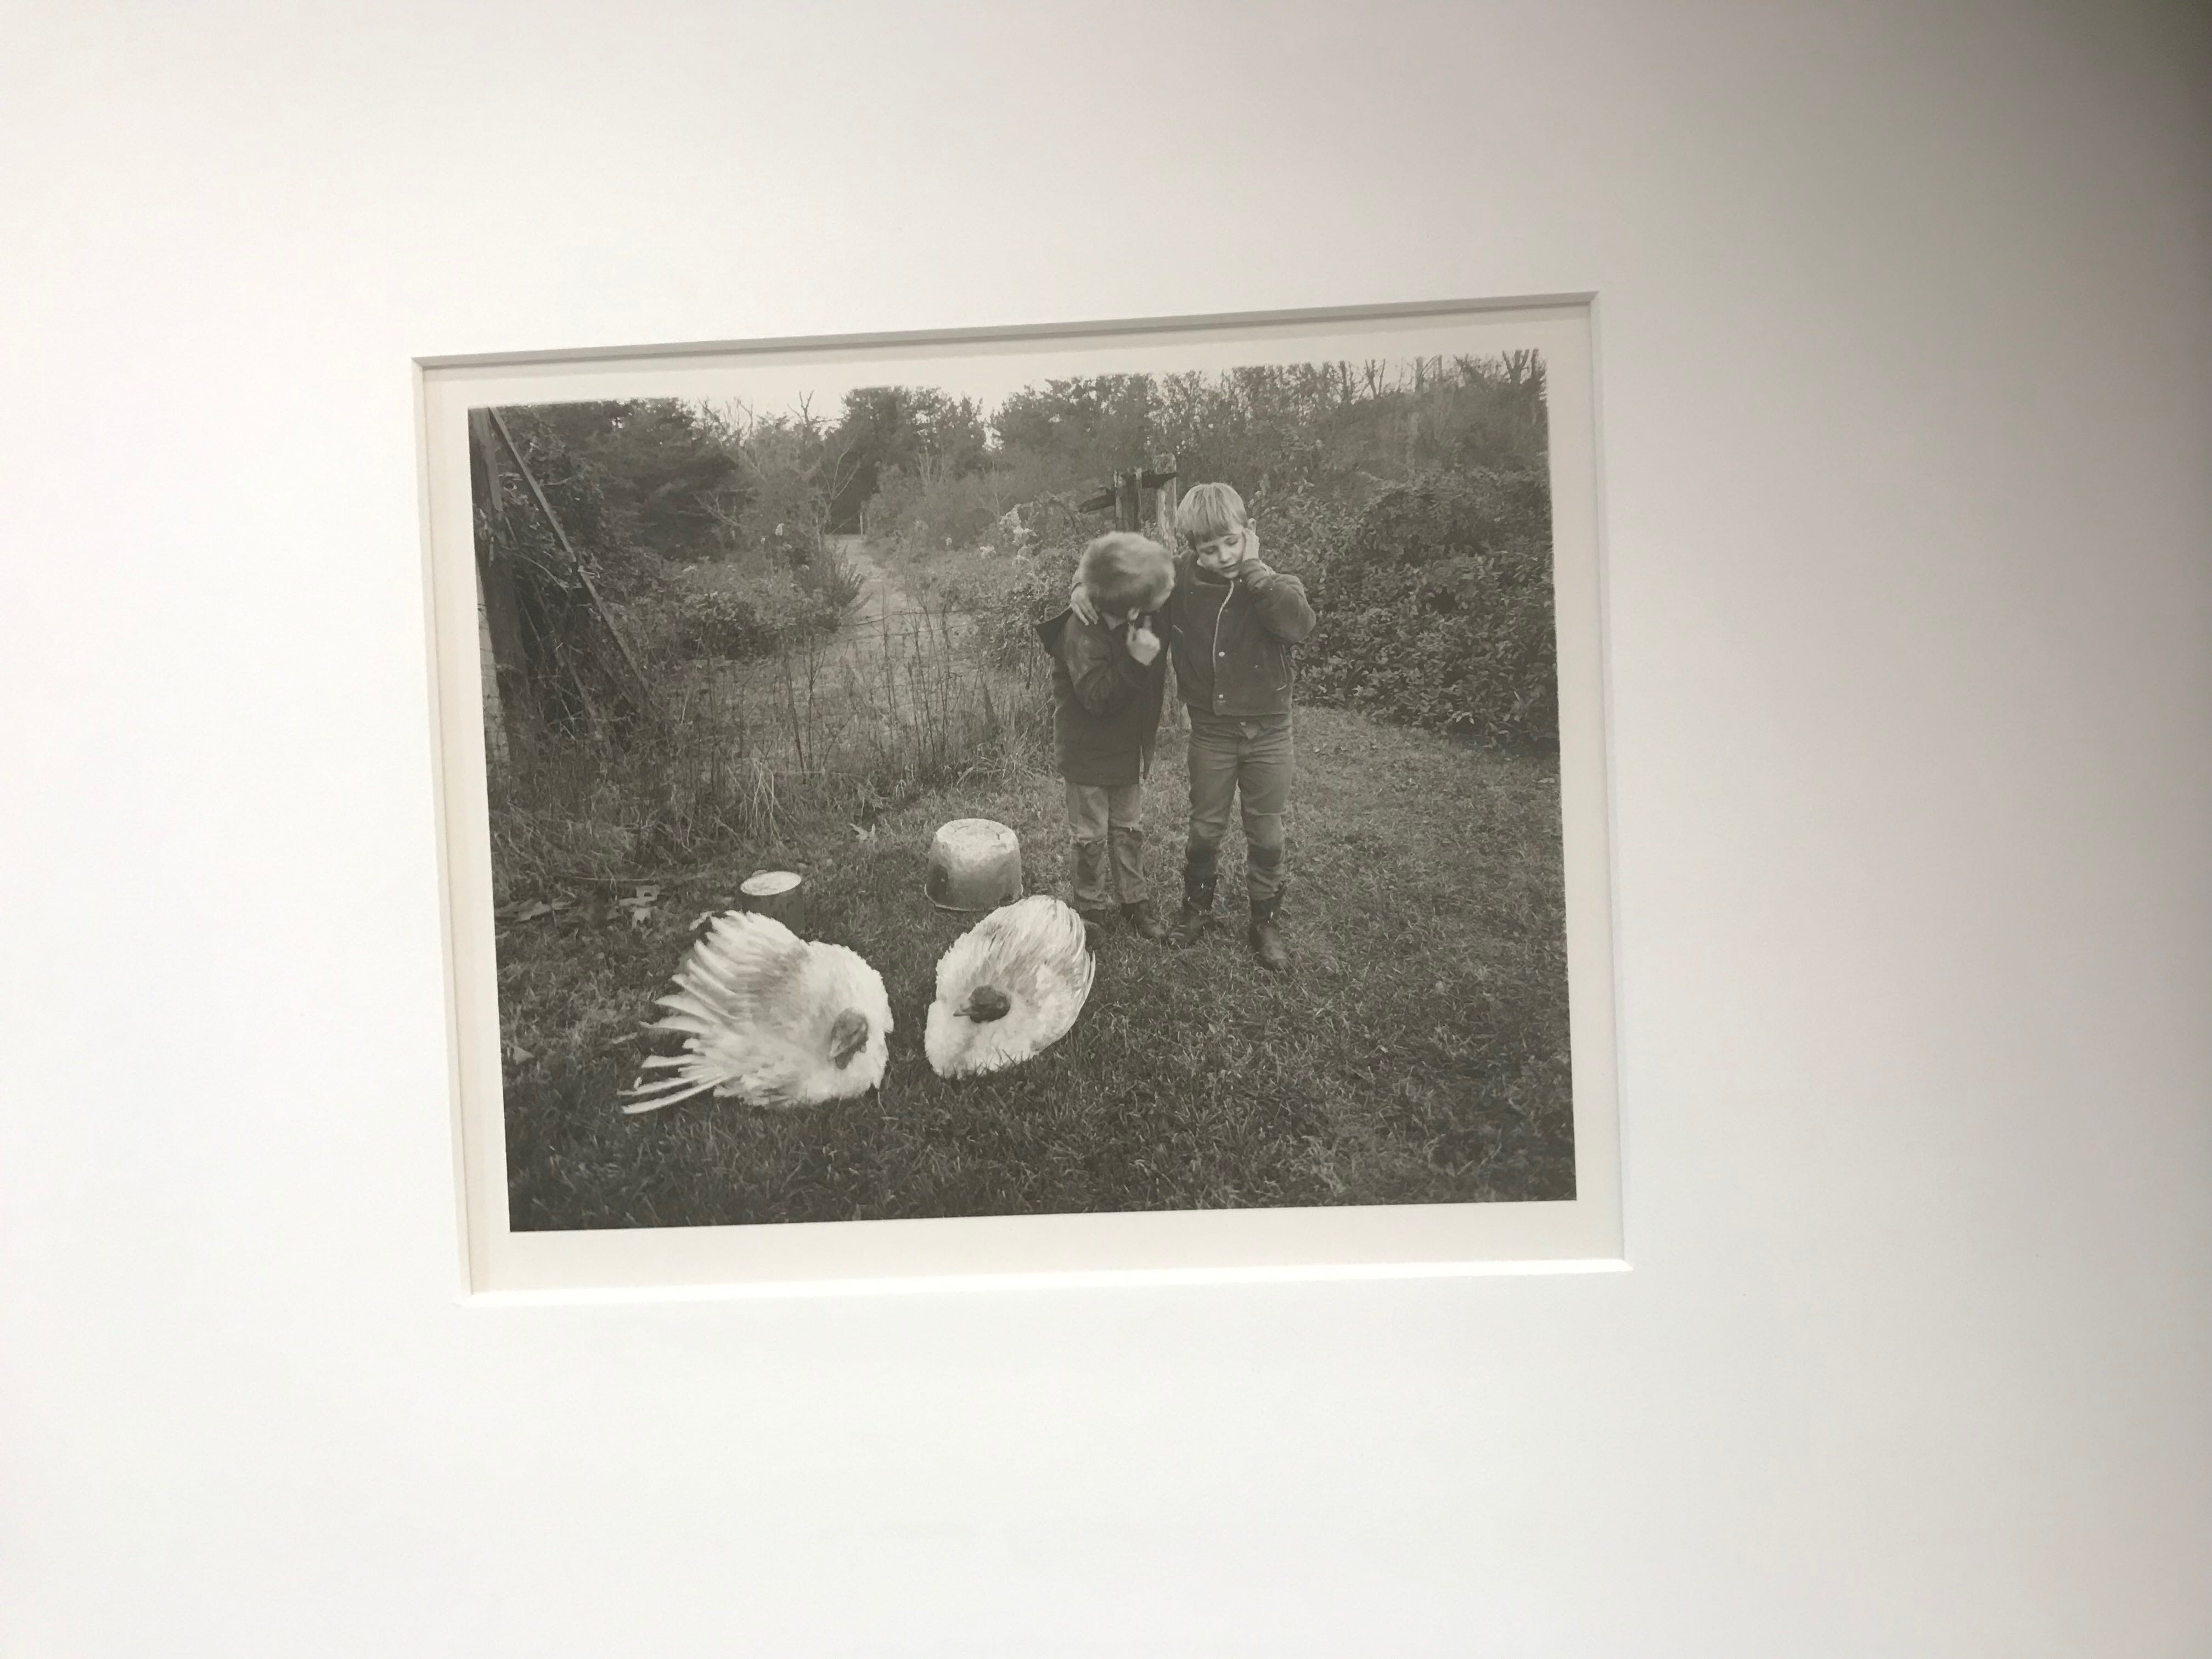 This photograph by Emmett Gowin of Danville, who lived as a youth on Chincoteague, was part of the Virginia Museum of Fine Arts artmobile display at a multicultural festival held at the site of the future regional library in Parksley, Virginia on Sunday, May 5, 2019.